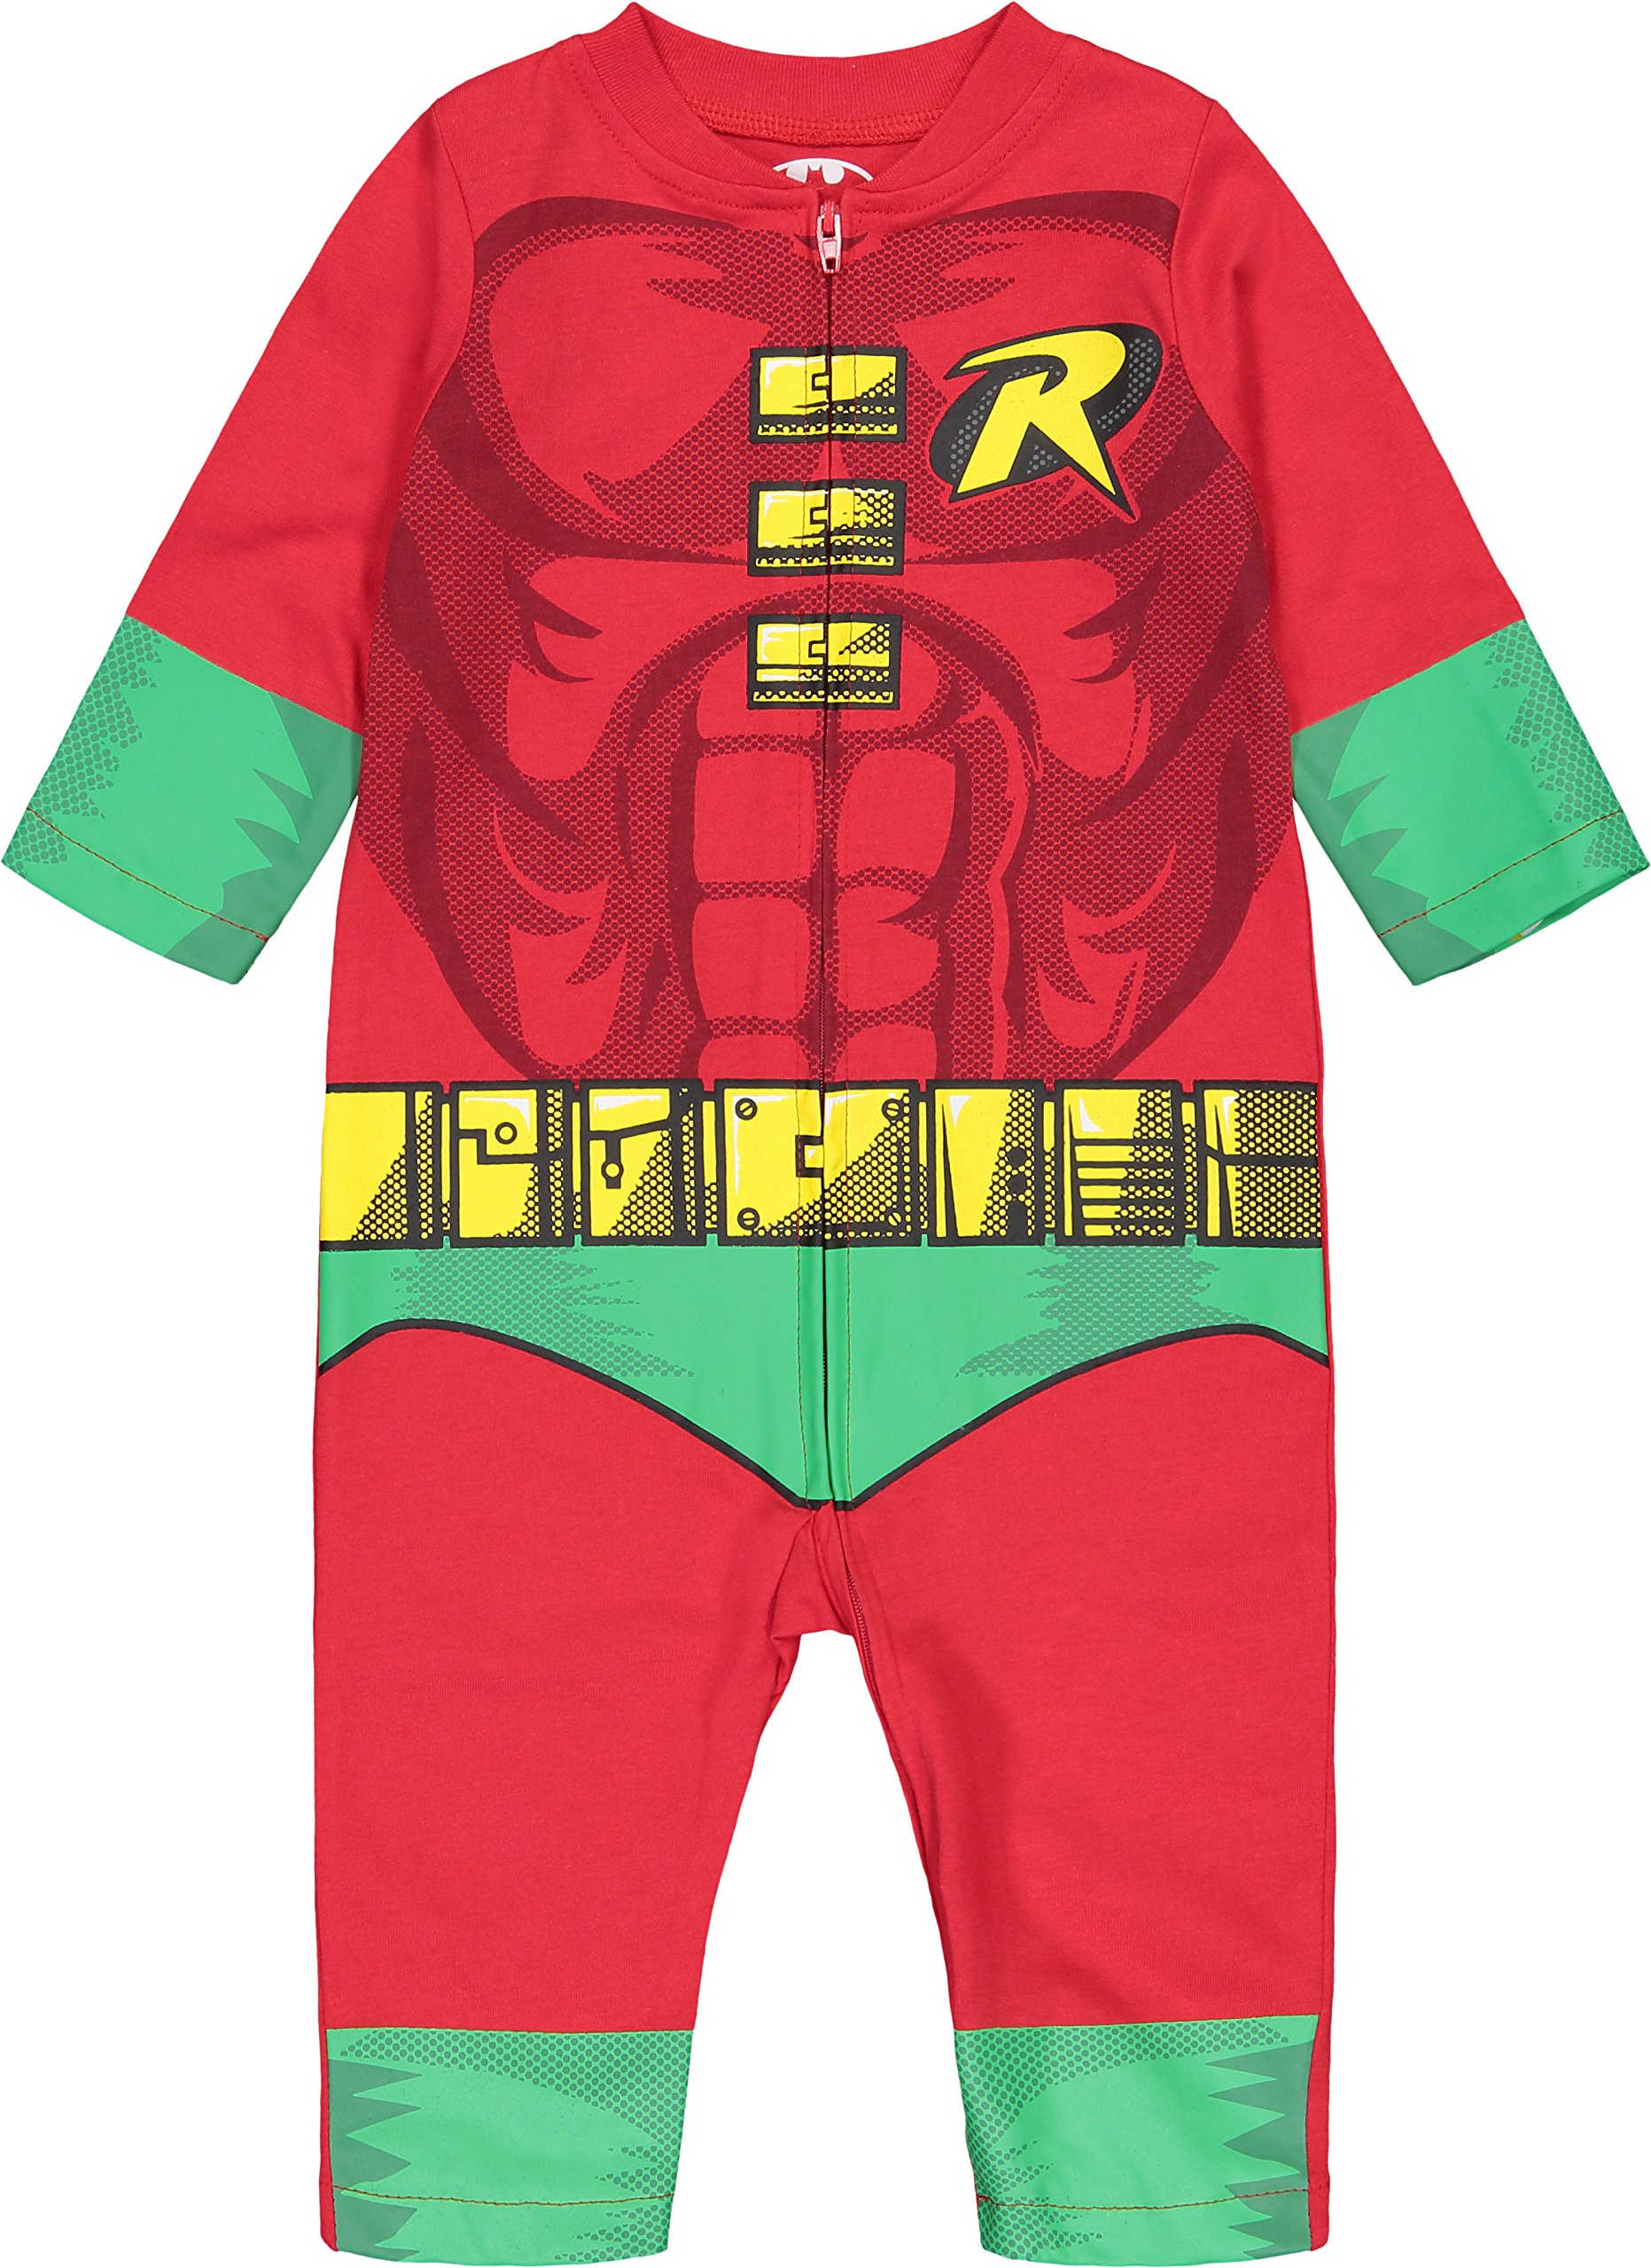 Warner Bros. Justice League Robin Baby Boys' Zip-Up Caped Costume Coverall (18 Months) by Warner Bros. (Image #4)